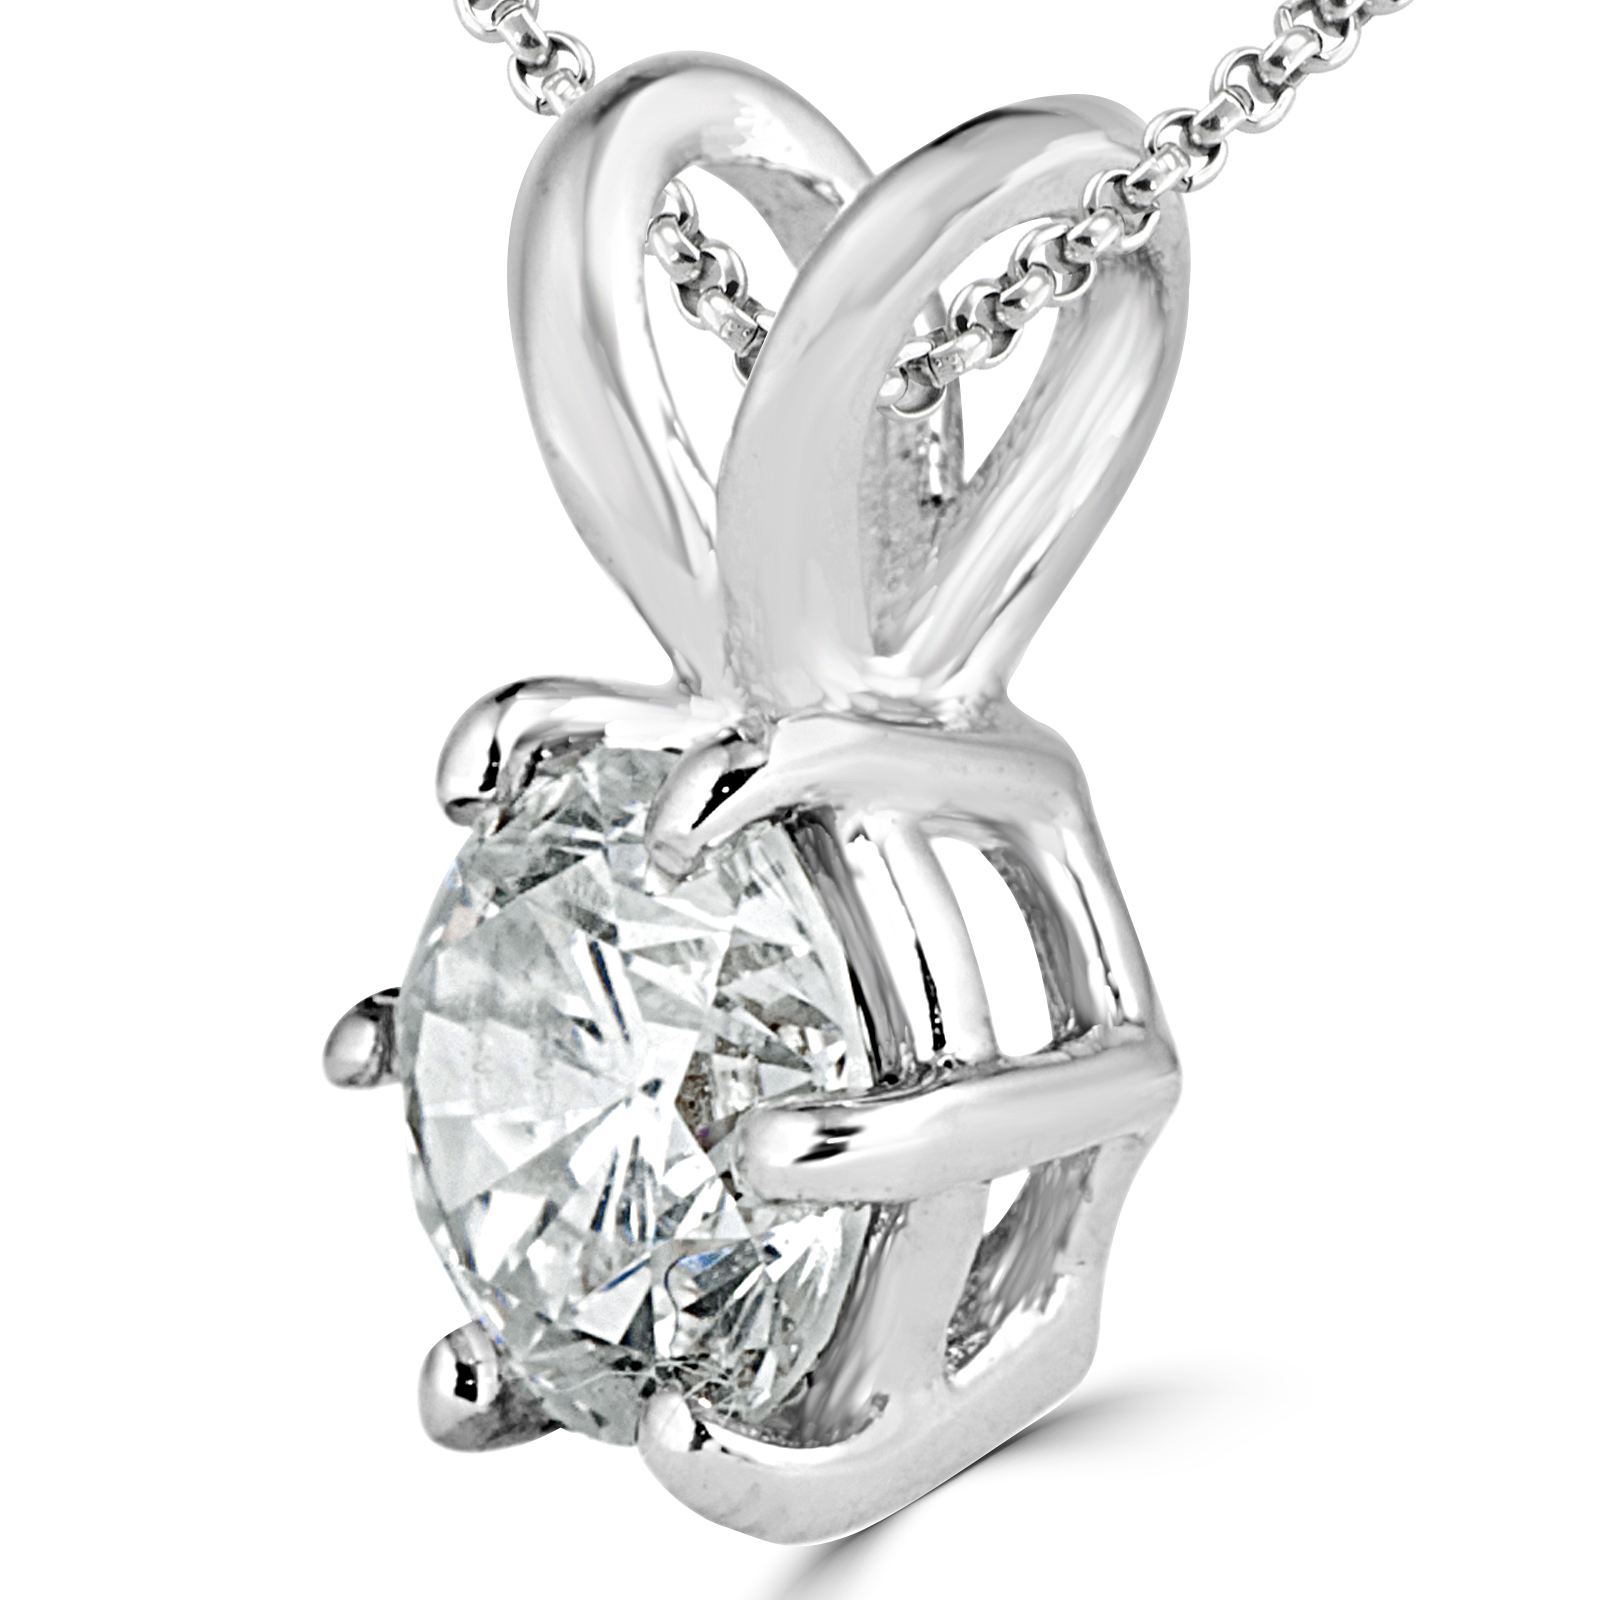 3/4 CT Round Diamond Solitaire Pendant Necklace in 14K White Gold With Chain with Accents (MD170215) - image 1 of 2